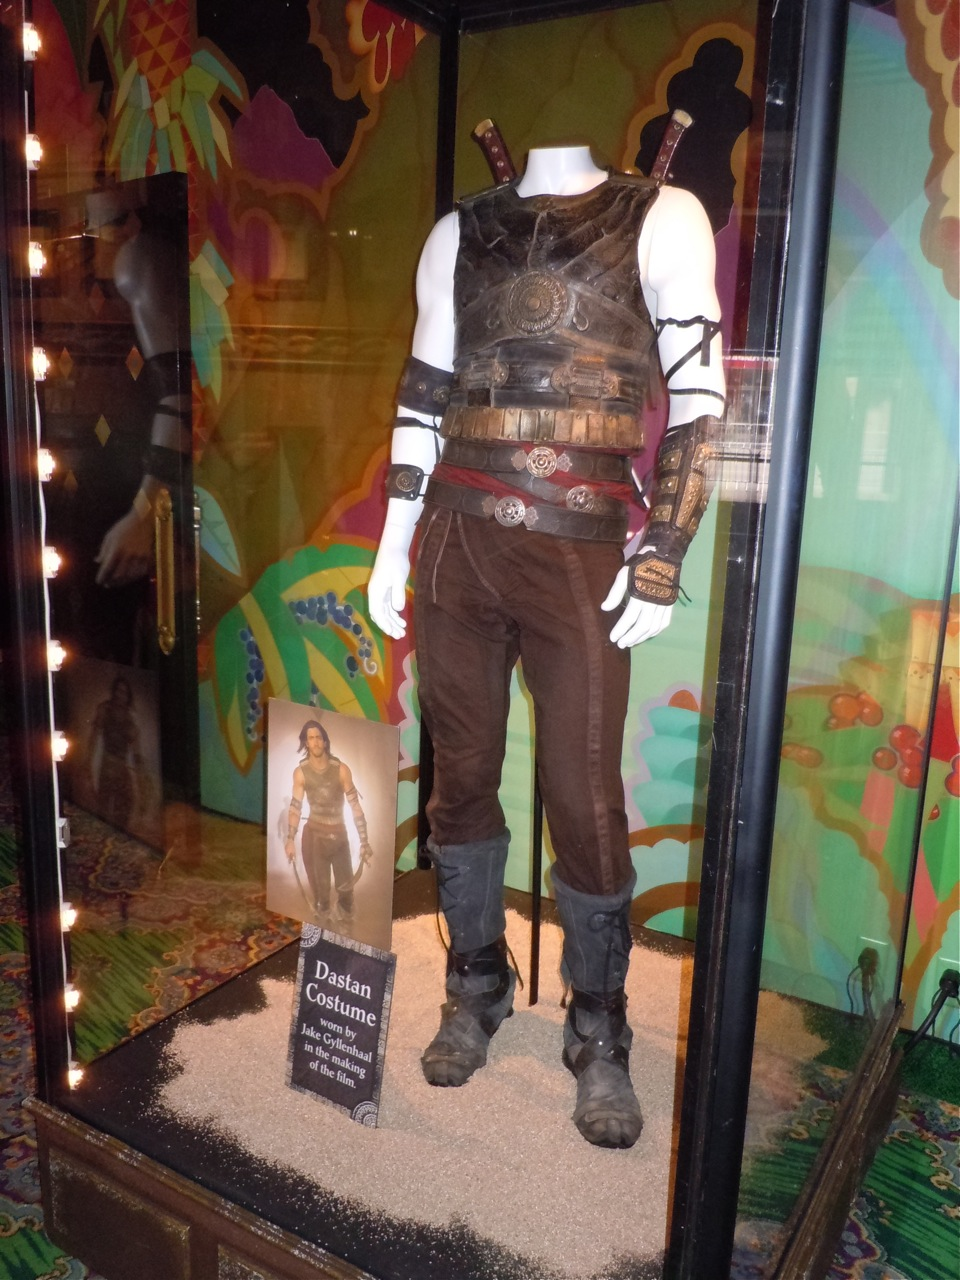 Actual Prince of Persia movie costume